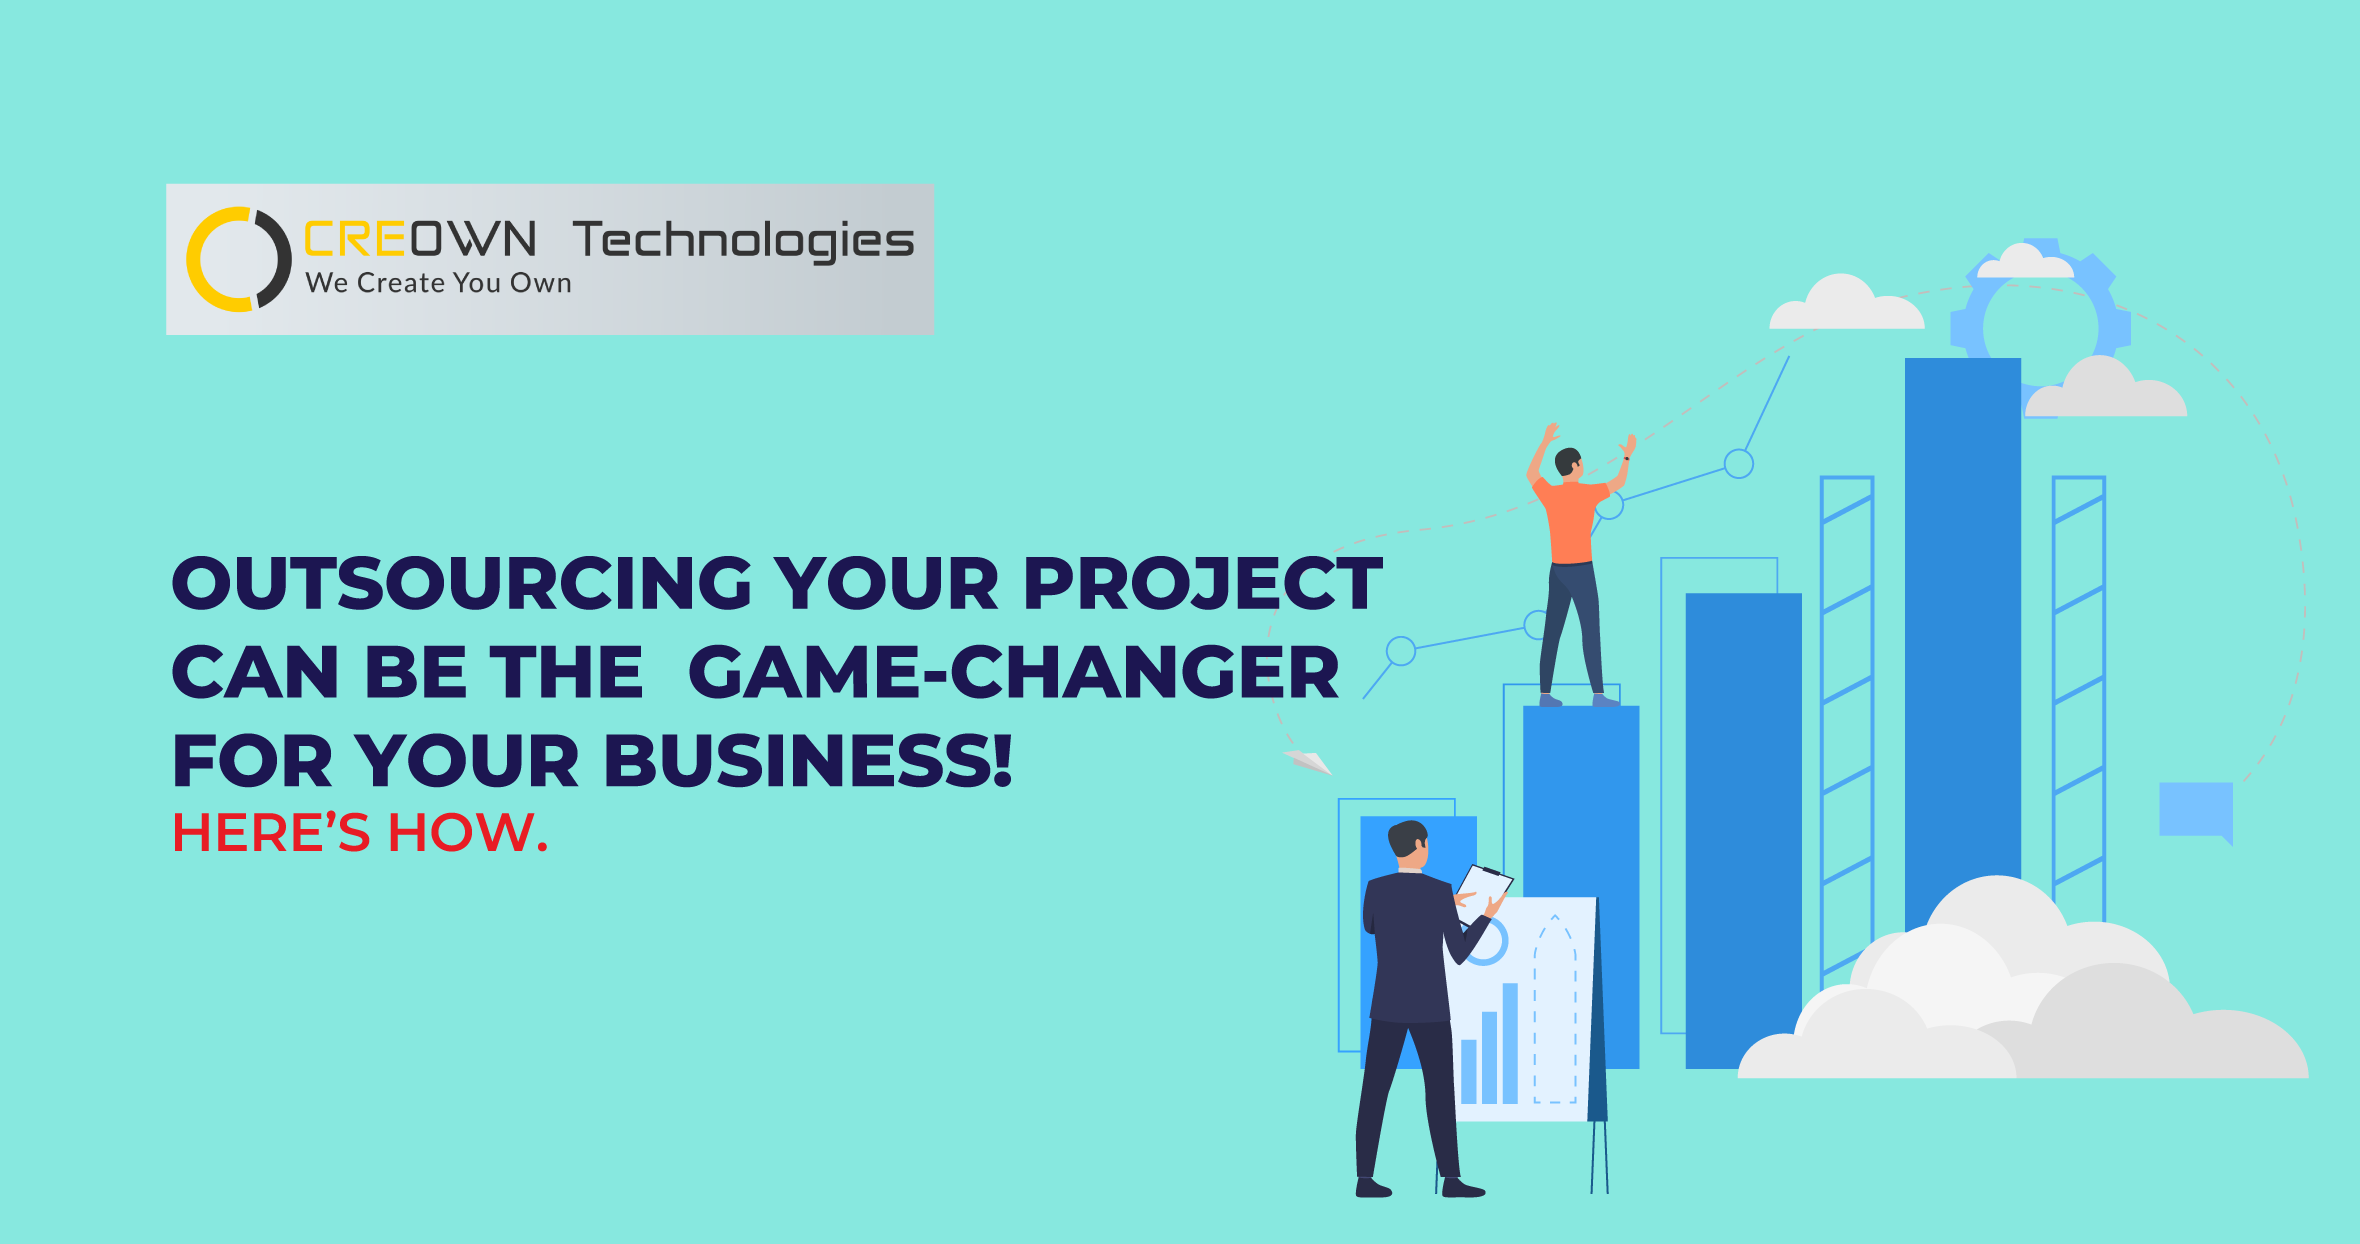 Outsourcing Your Project can be the  Game-changer for Your Business! Here's how.